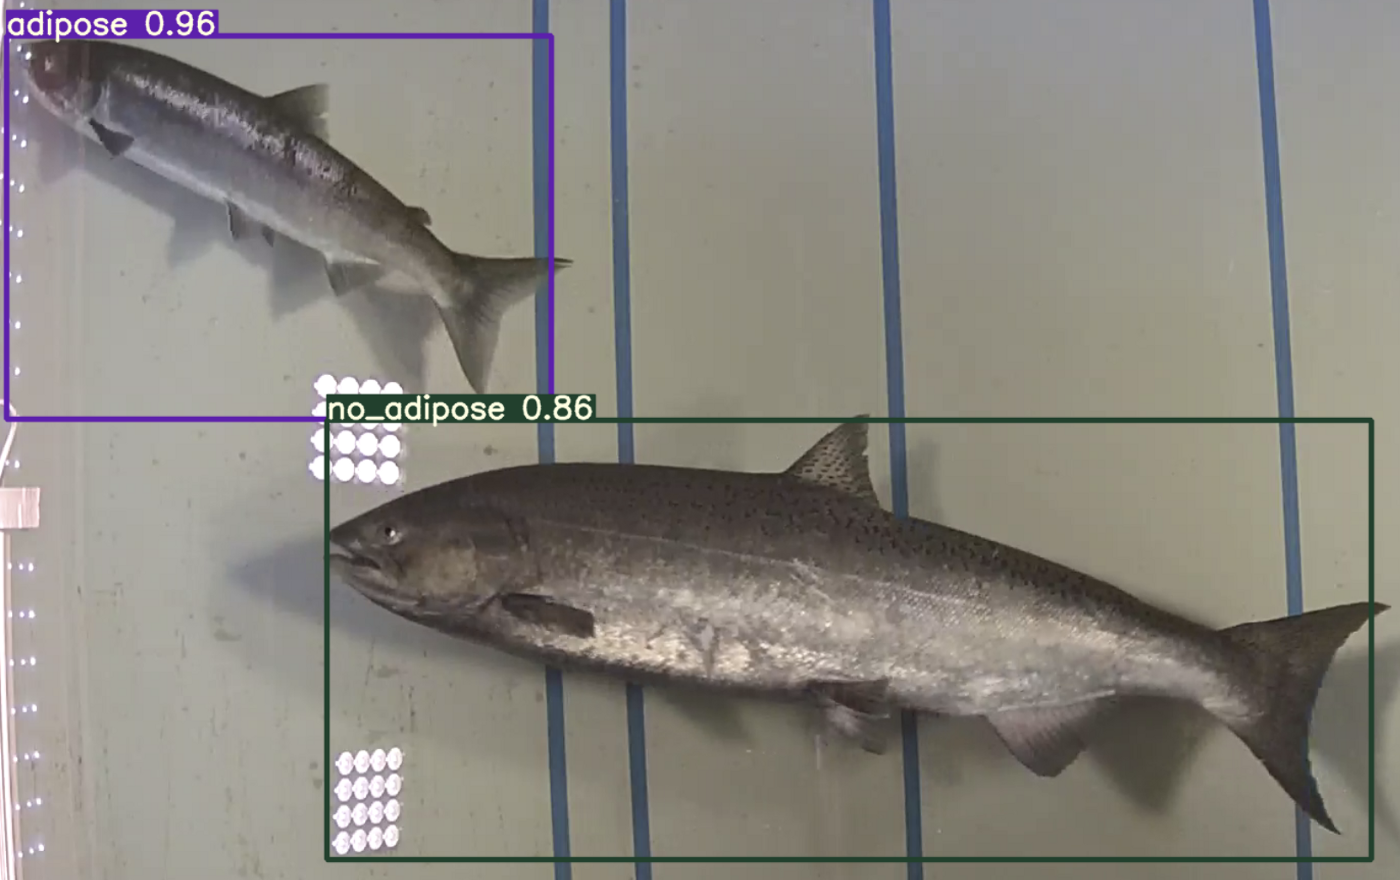 Object detection of salmon.